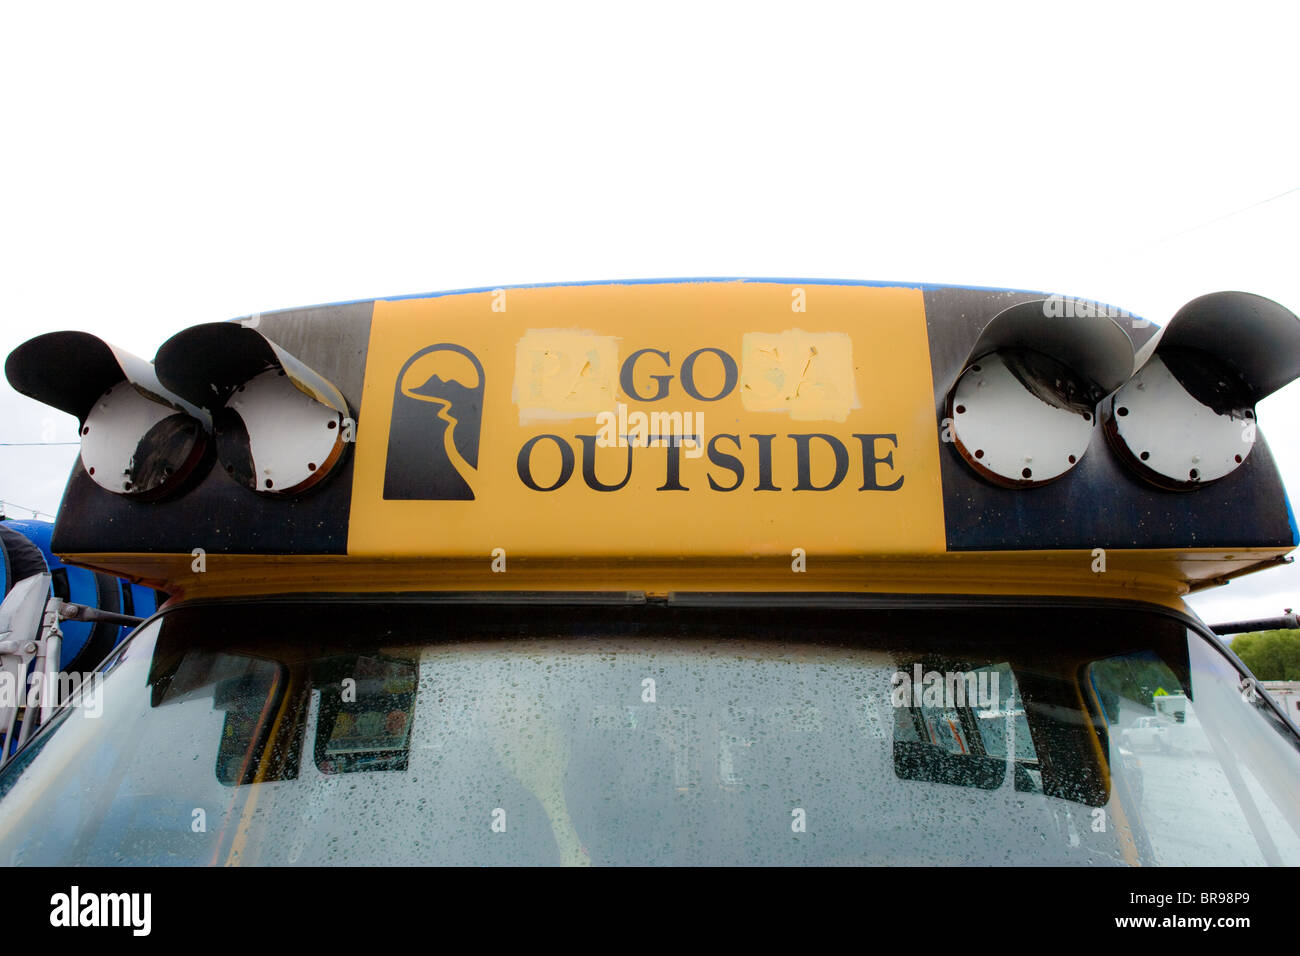 sign on bus 'go outside' - Stock Image